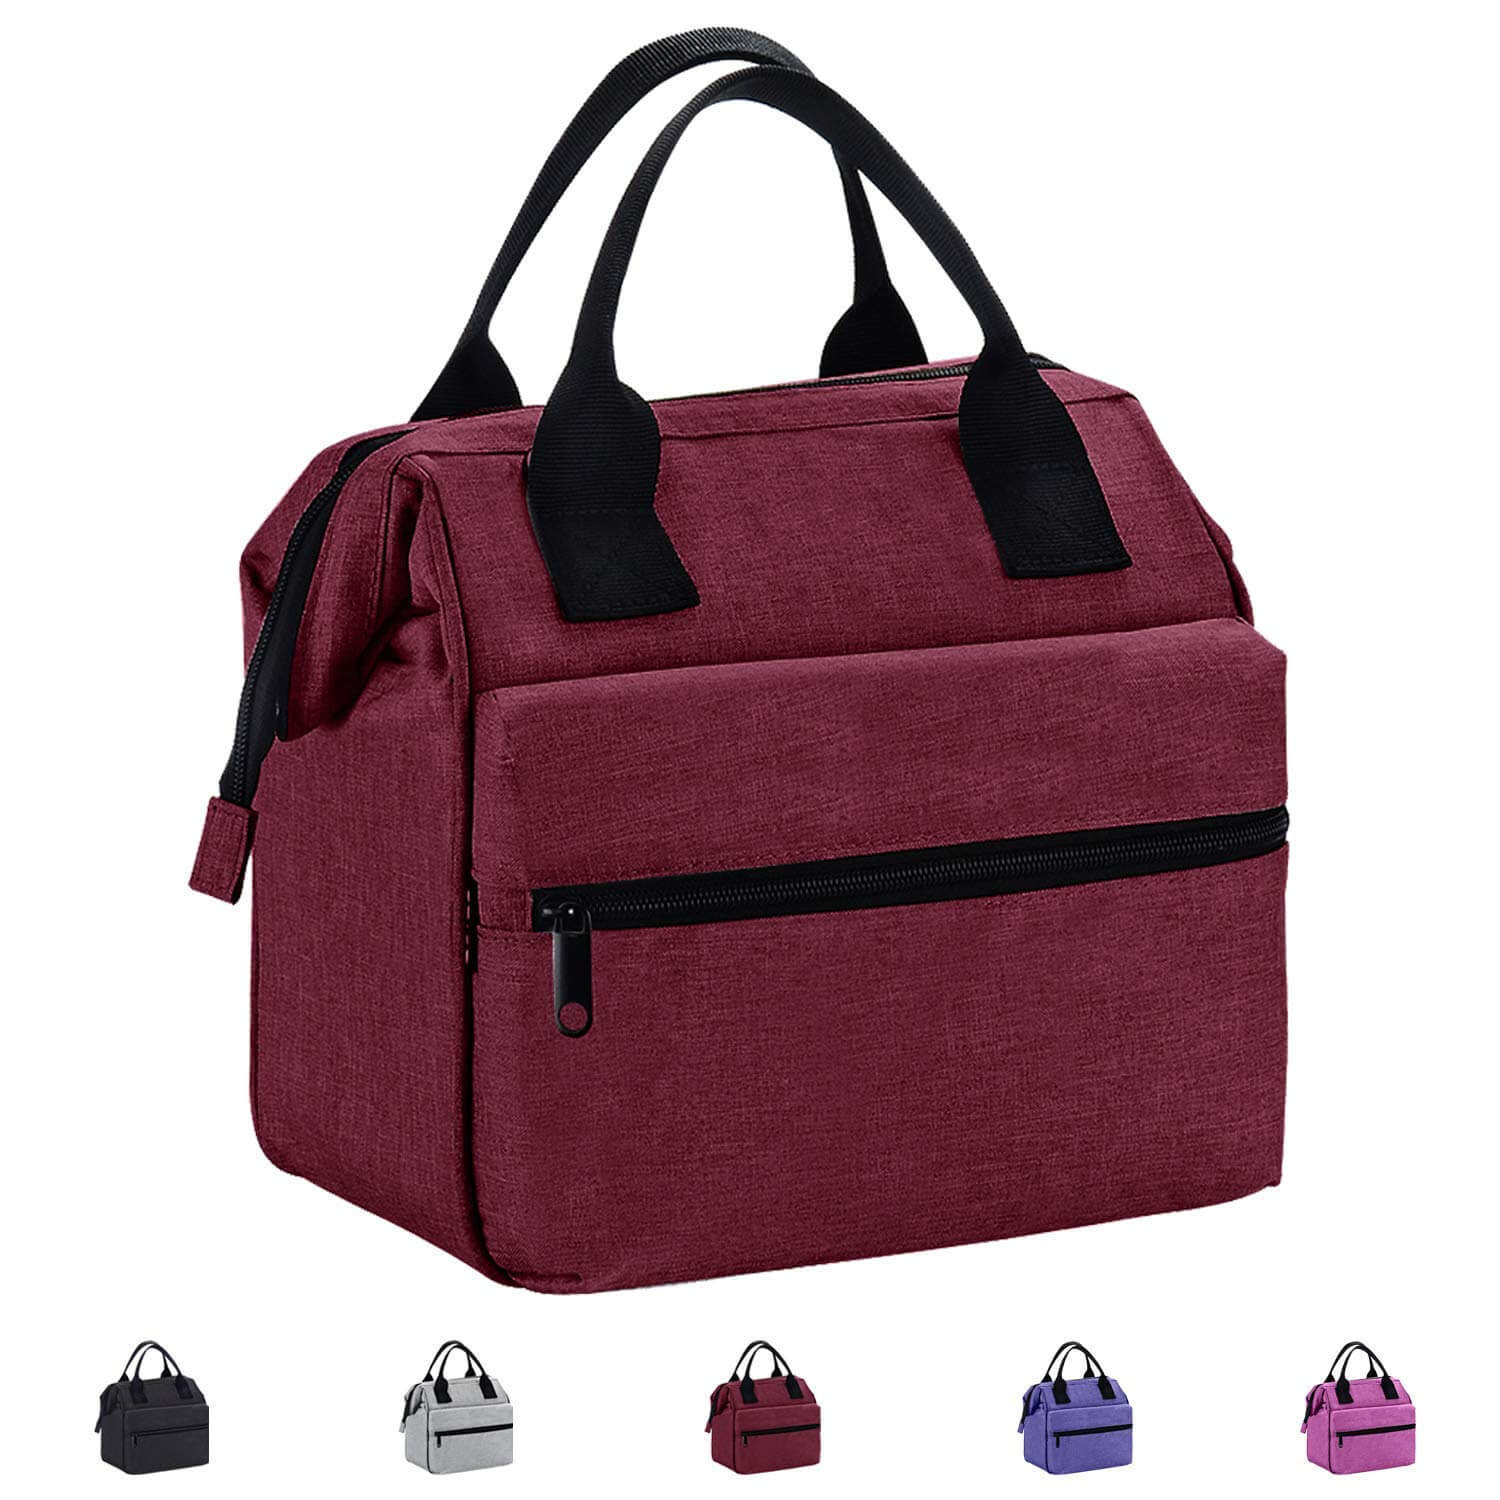 Easyfun Lunch Bags For Women&Men Insulated Lunch Box